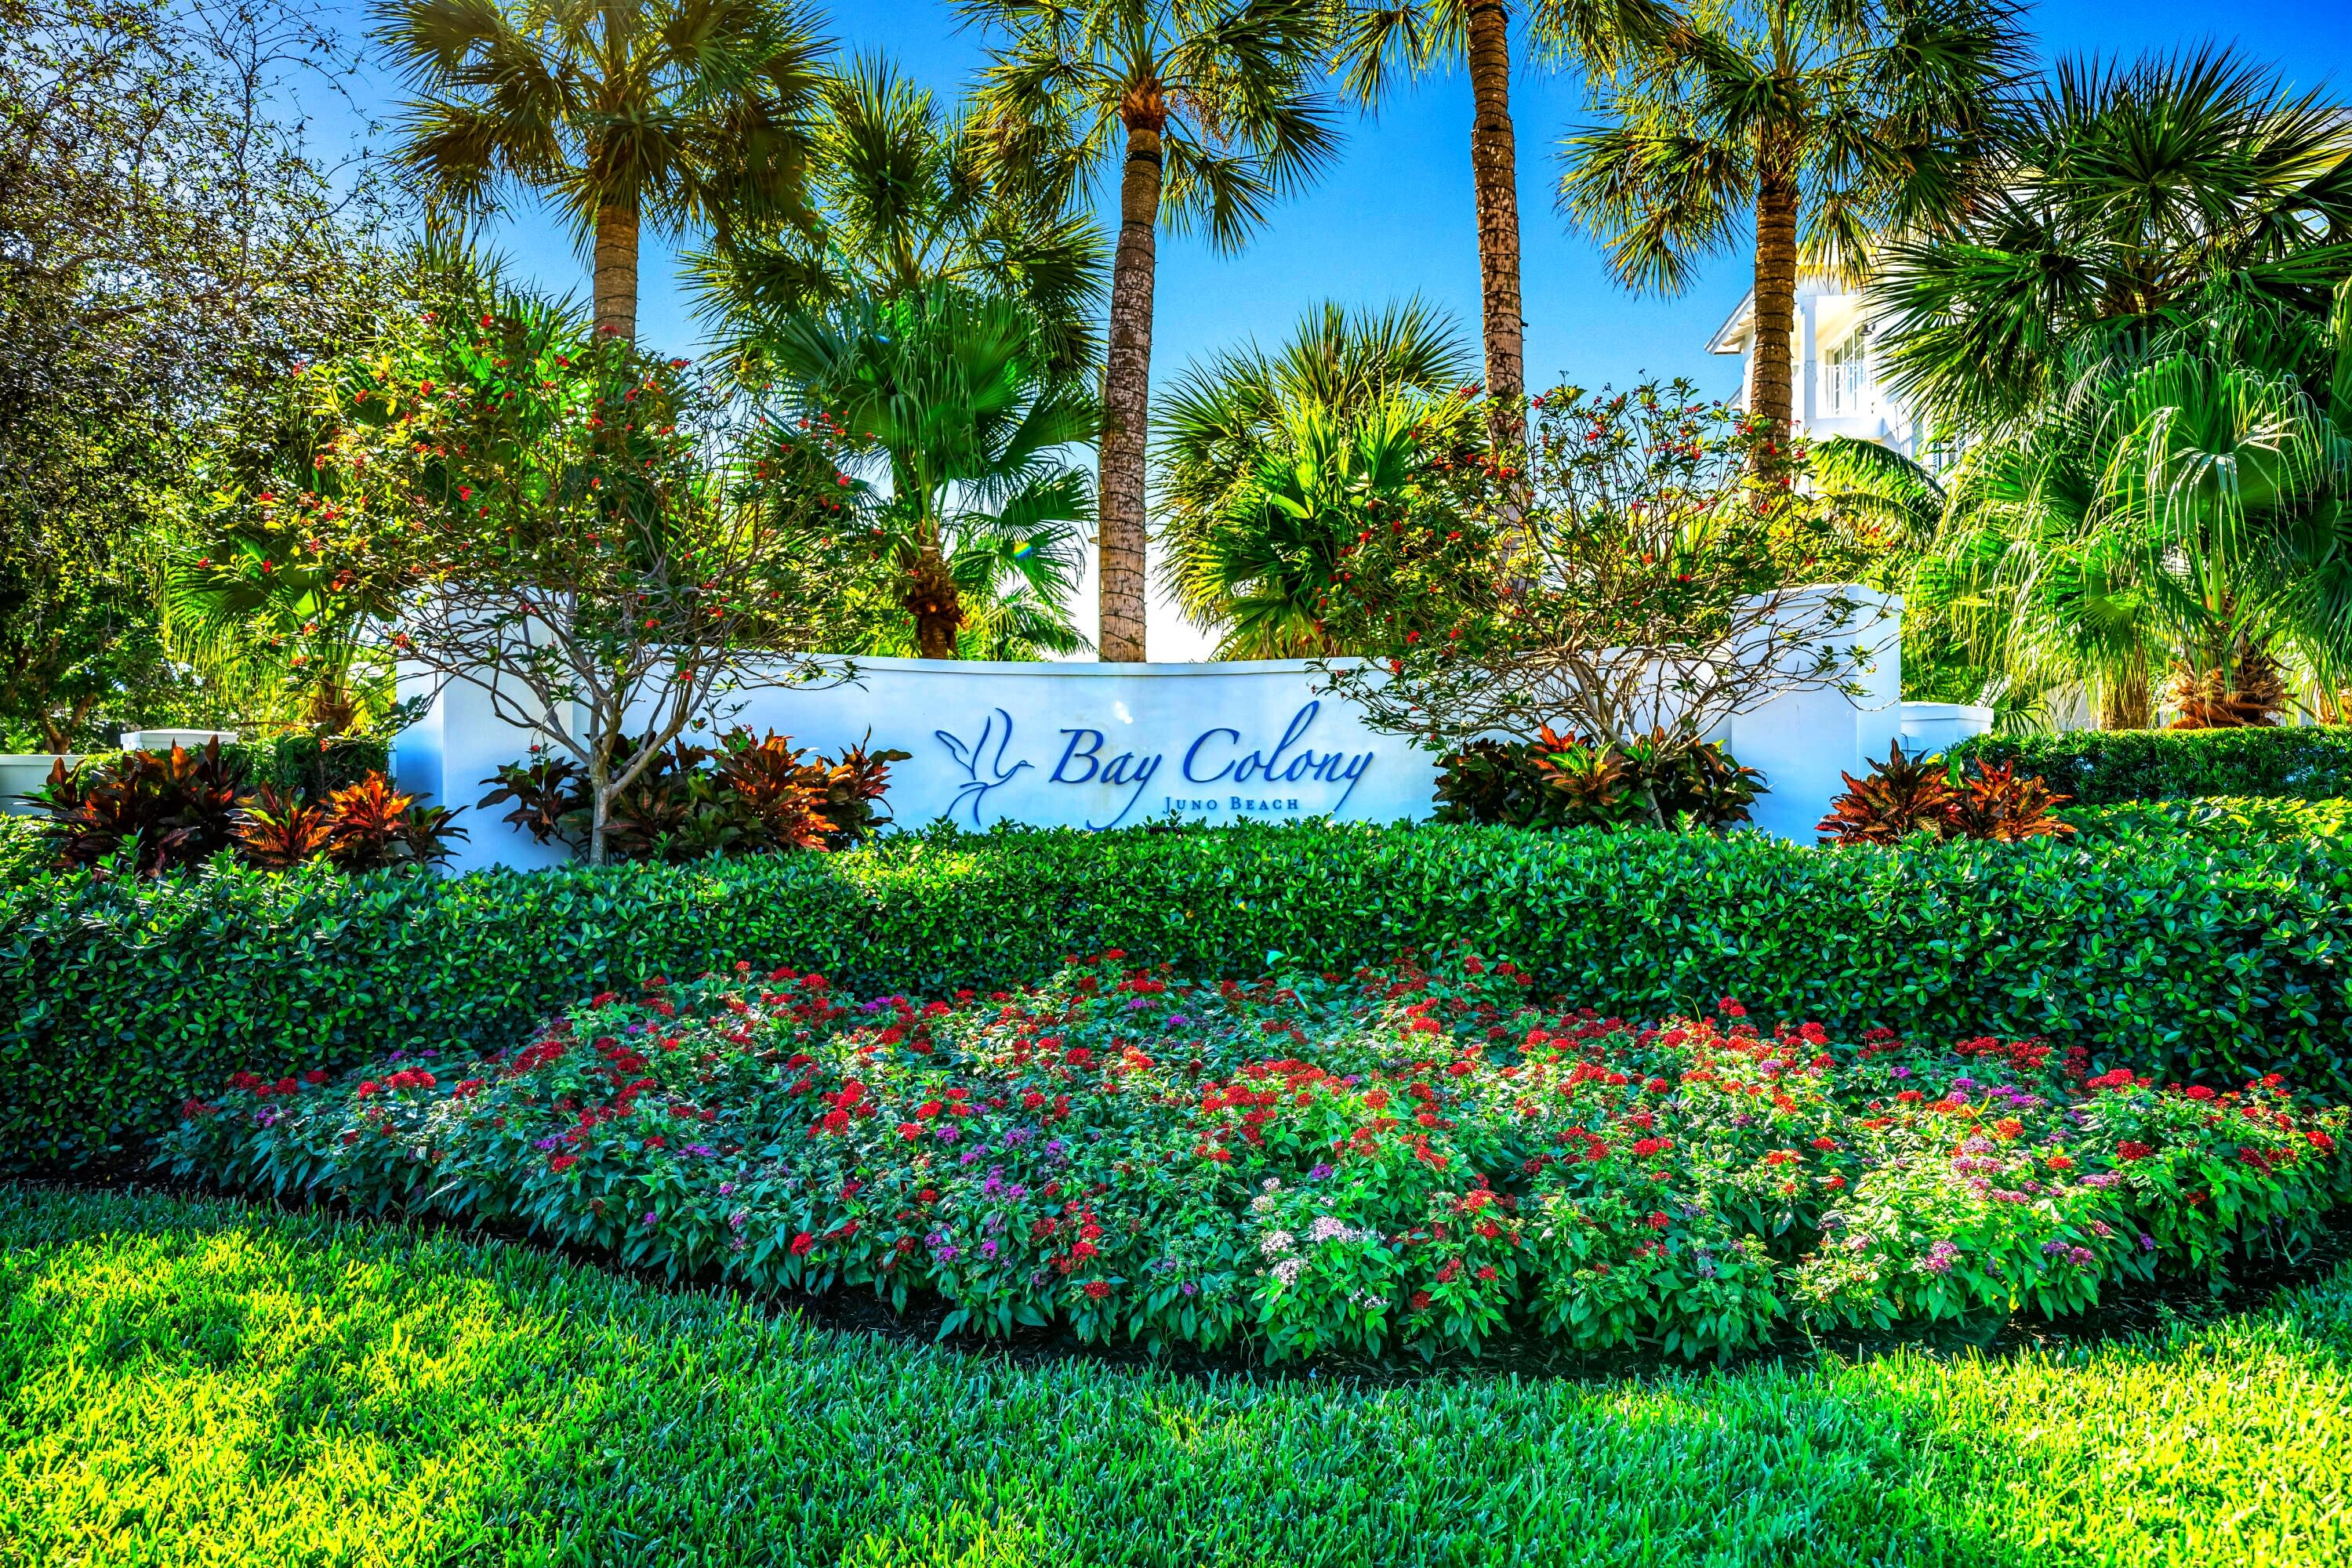 344  Bay Colony Drive  For Sale 10727850, FL